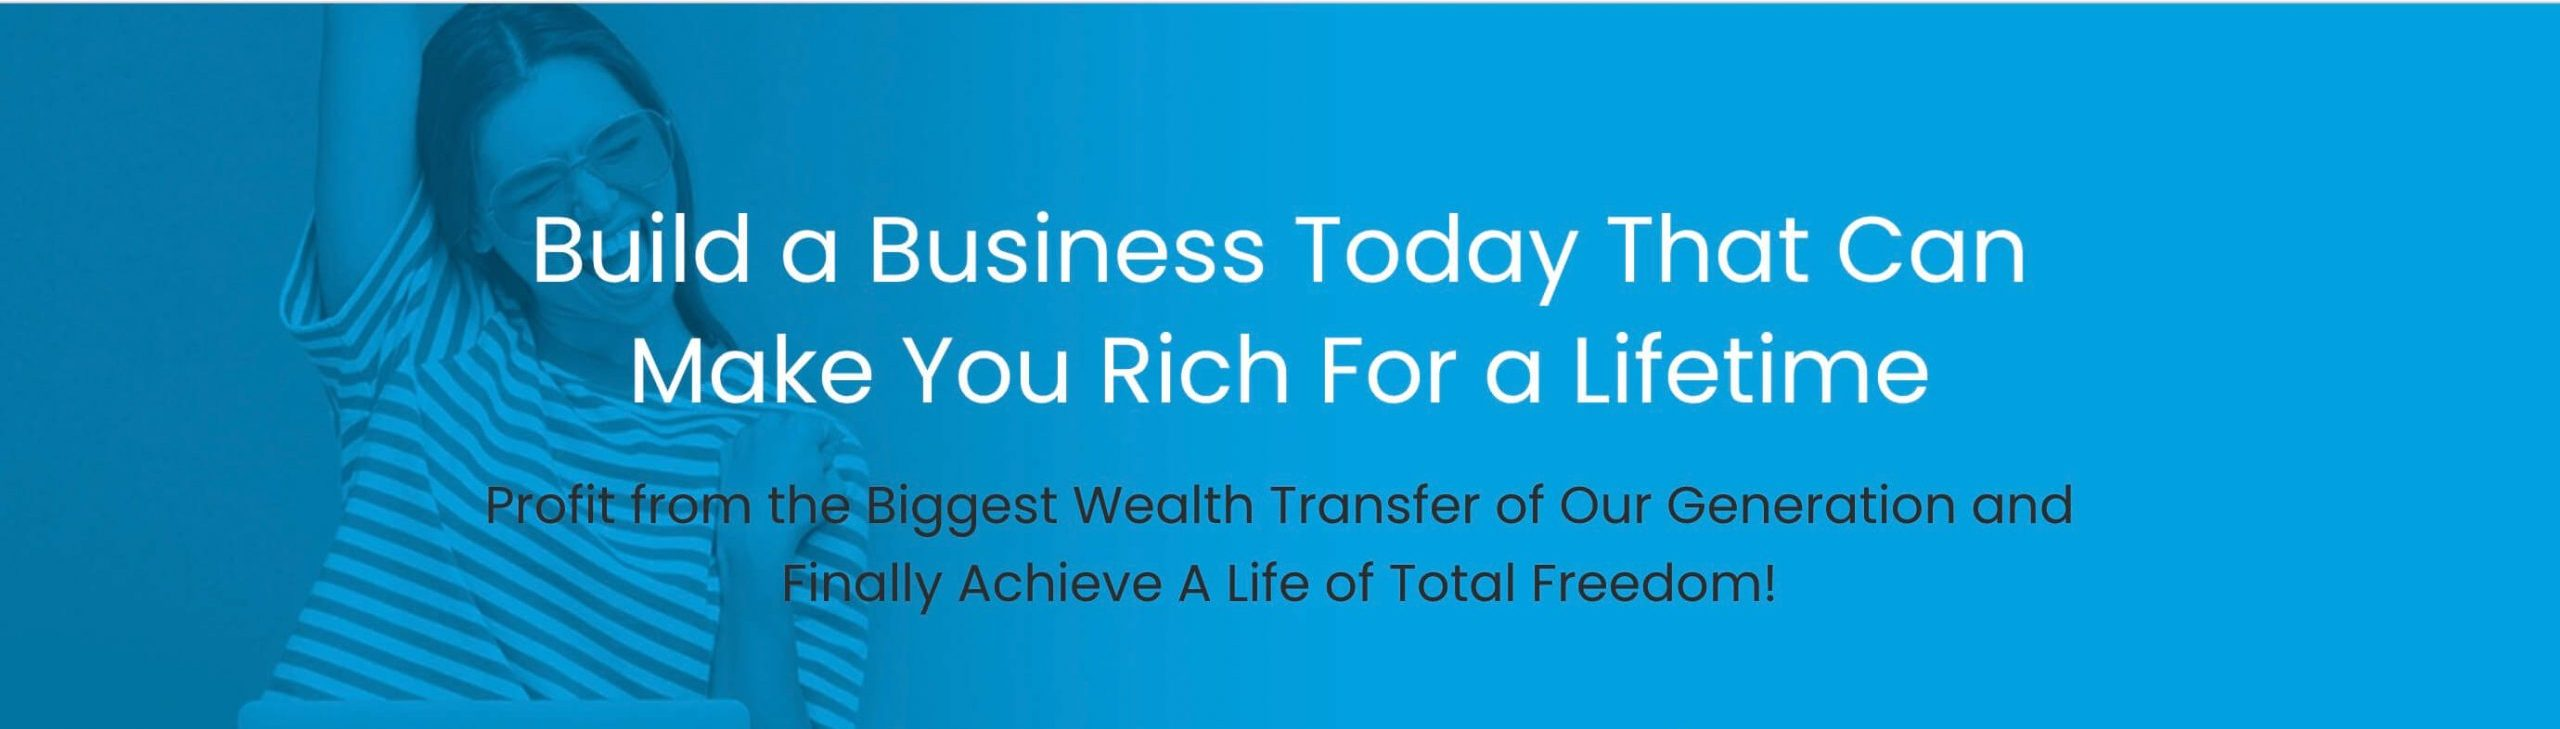 Amazing Selling Machine - Build a Business Today That Can Make You Rich For a Lifetime